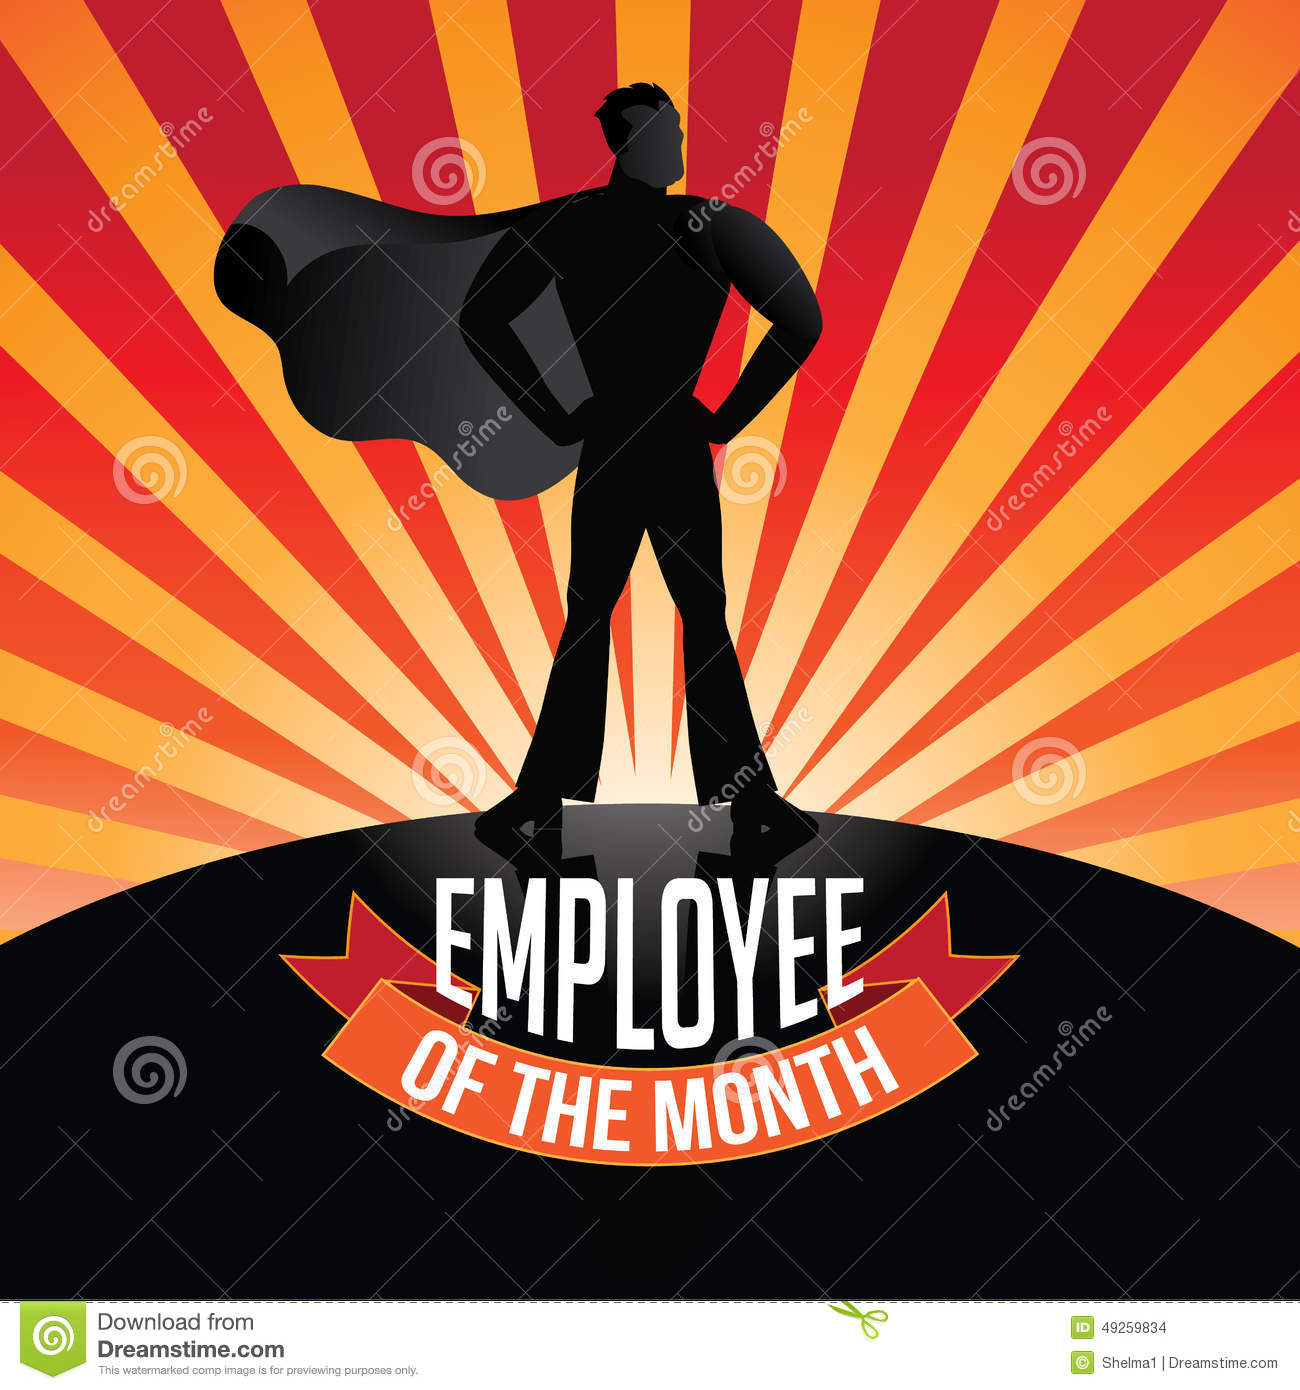 Employee Of The Month Burst Stock Vector